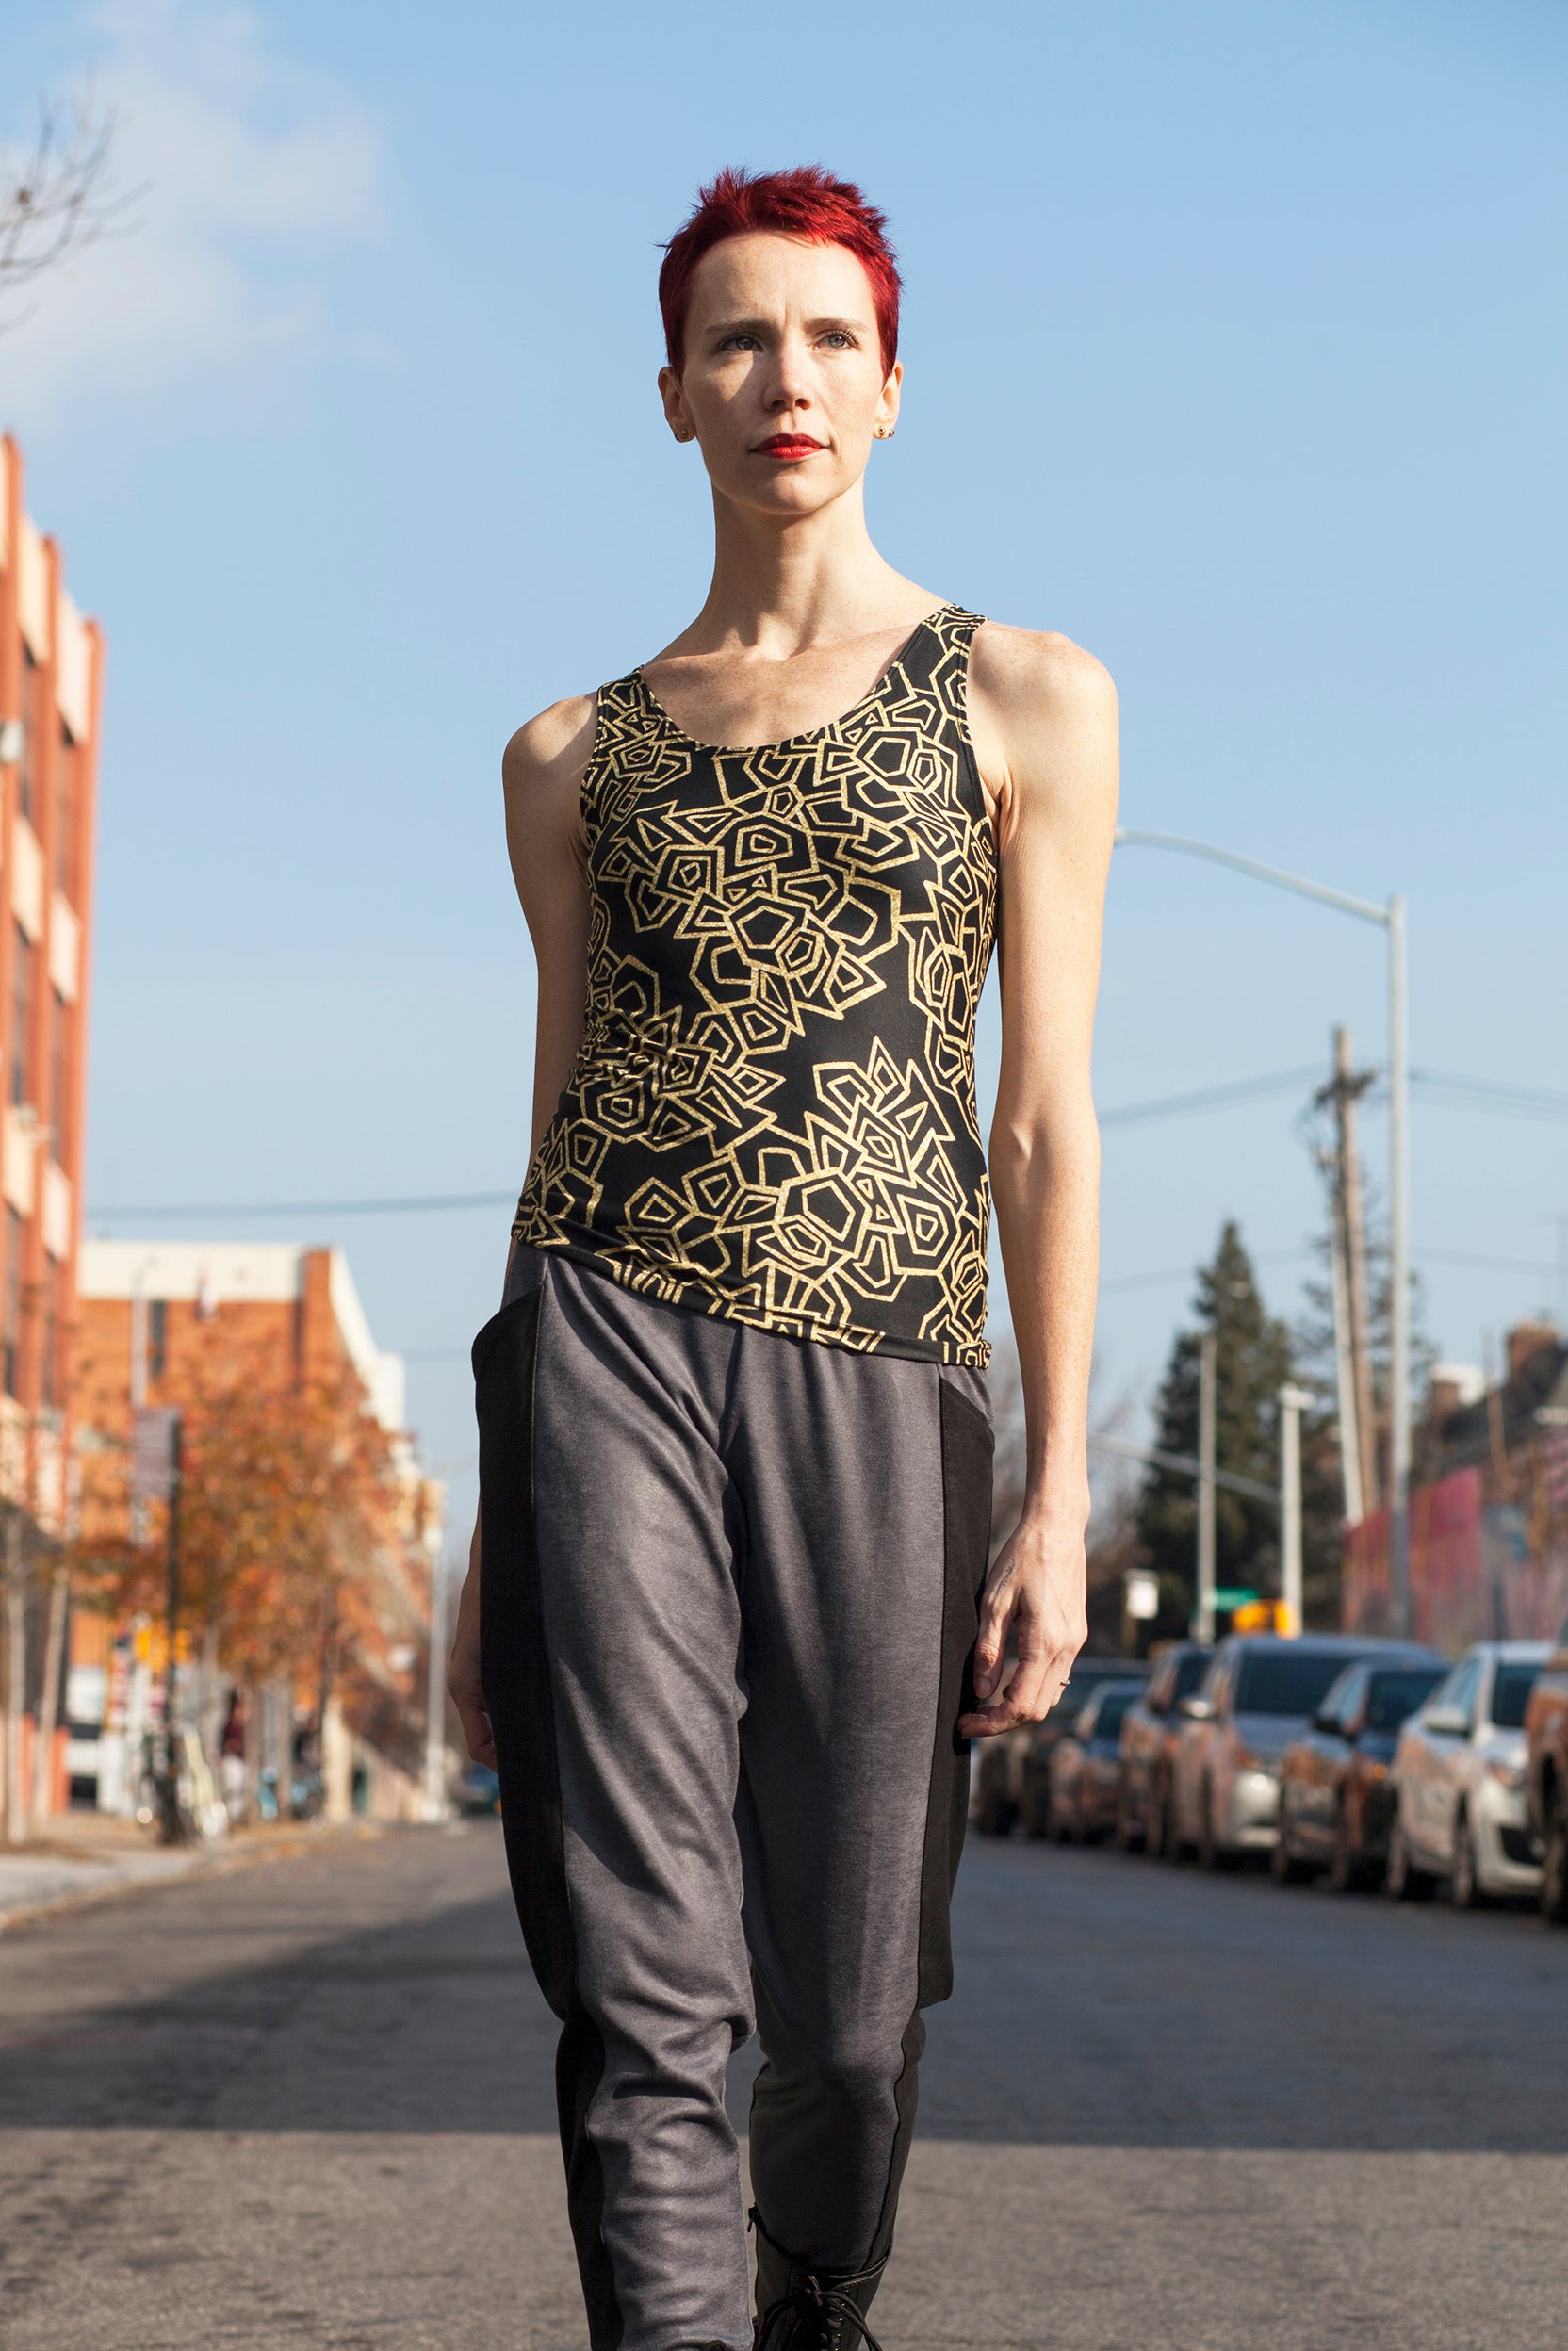 Gold Foil Geo Fitted Tank Top/Regular Length Fitted Tank Top (Regular)  Roxie Rudolph Roxie Rudolph Roxie Rudolph